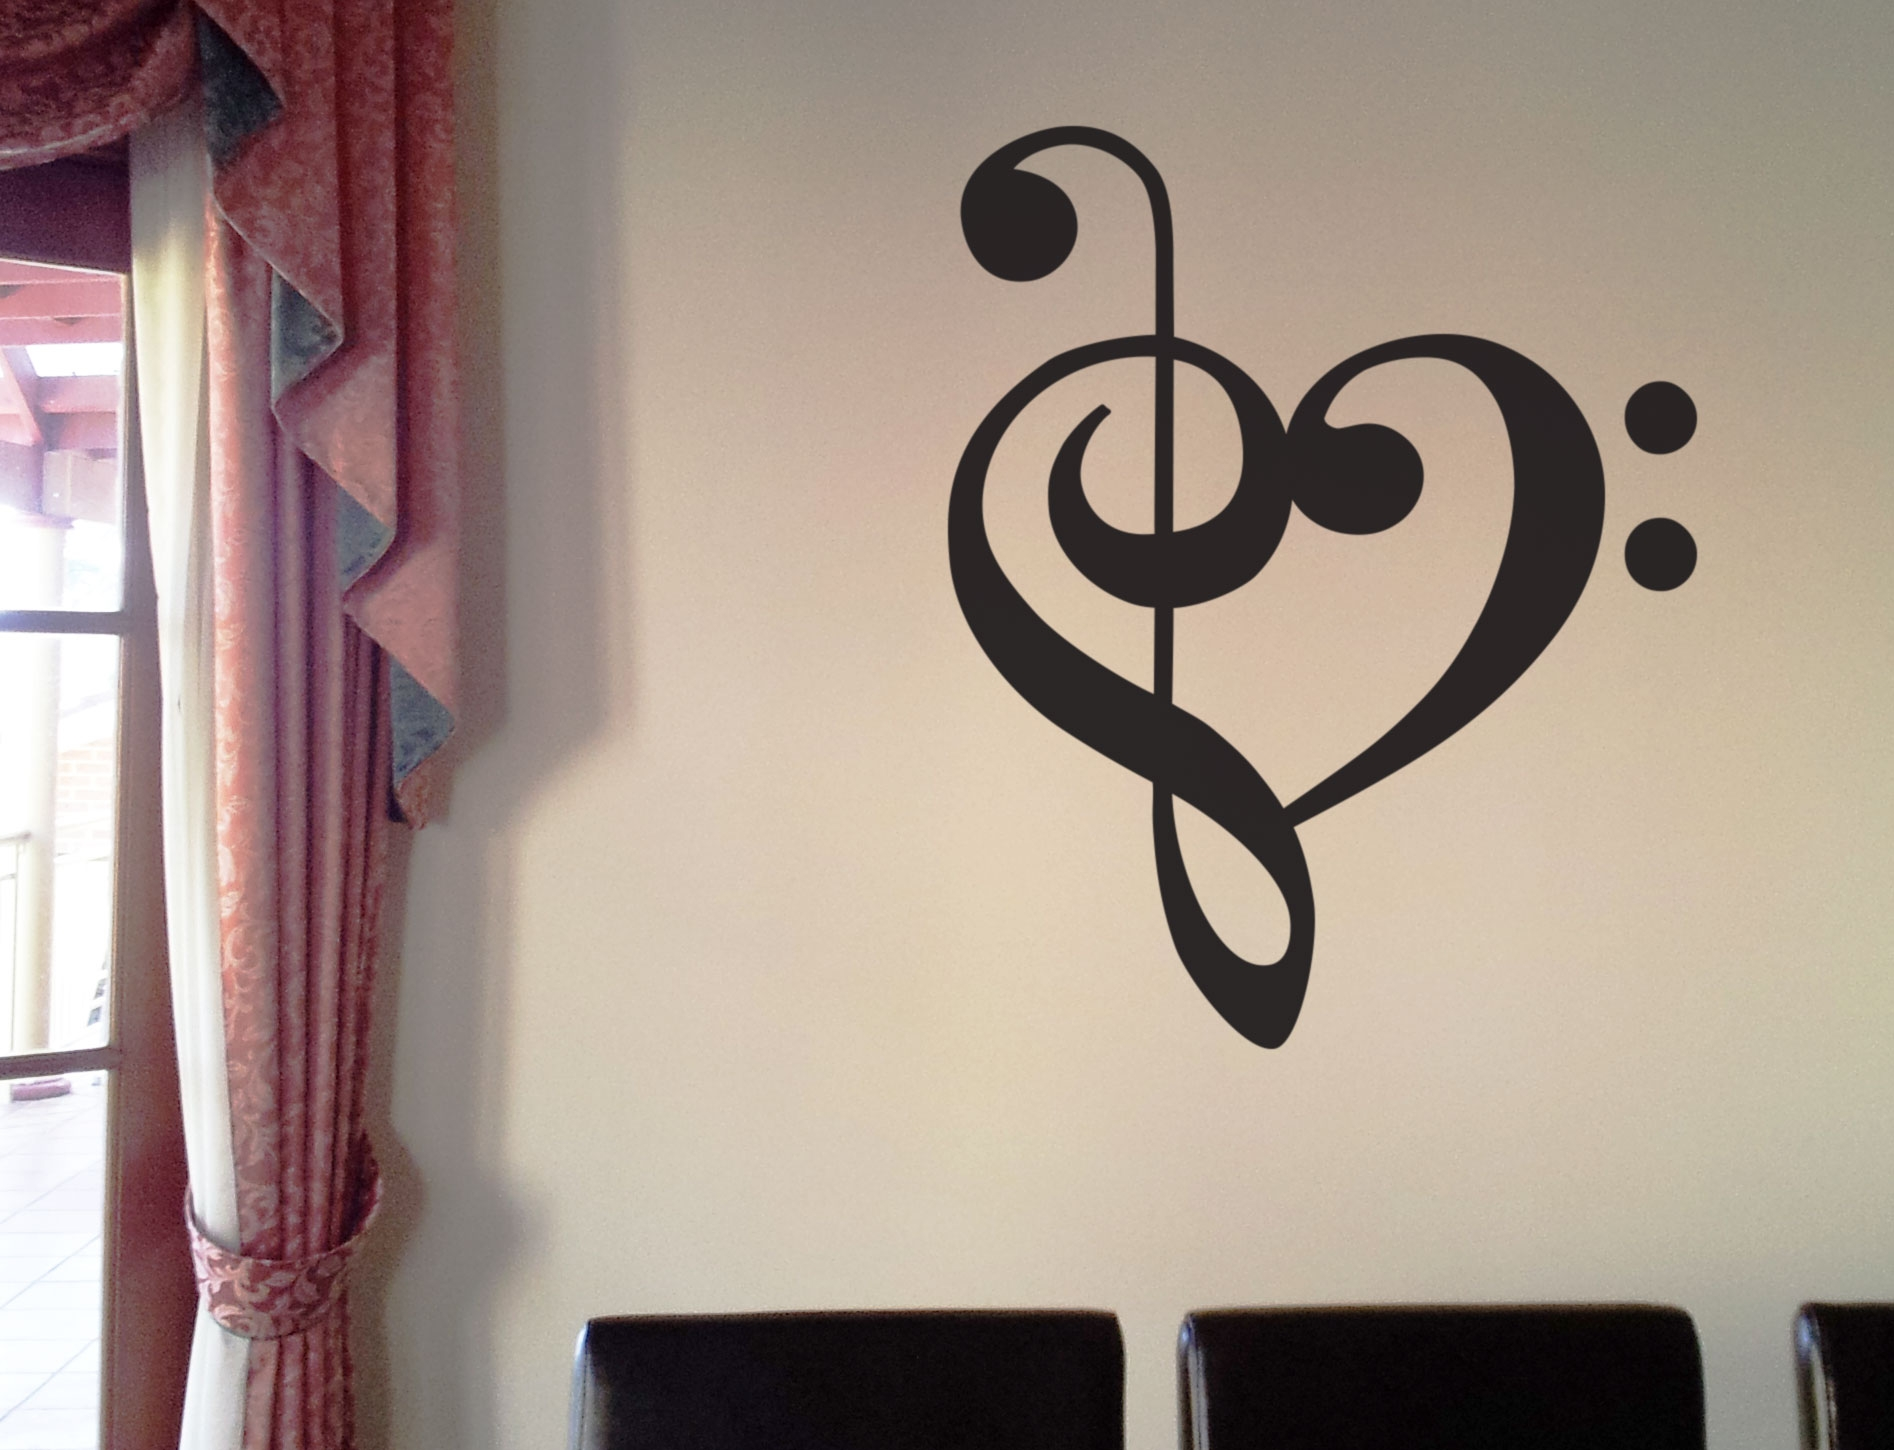 Faszinierend Wall Tattoo Ideen Von Music Heart Beat Love Treble Bass Clef